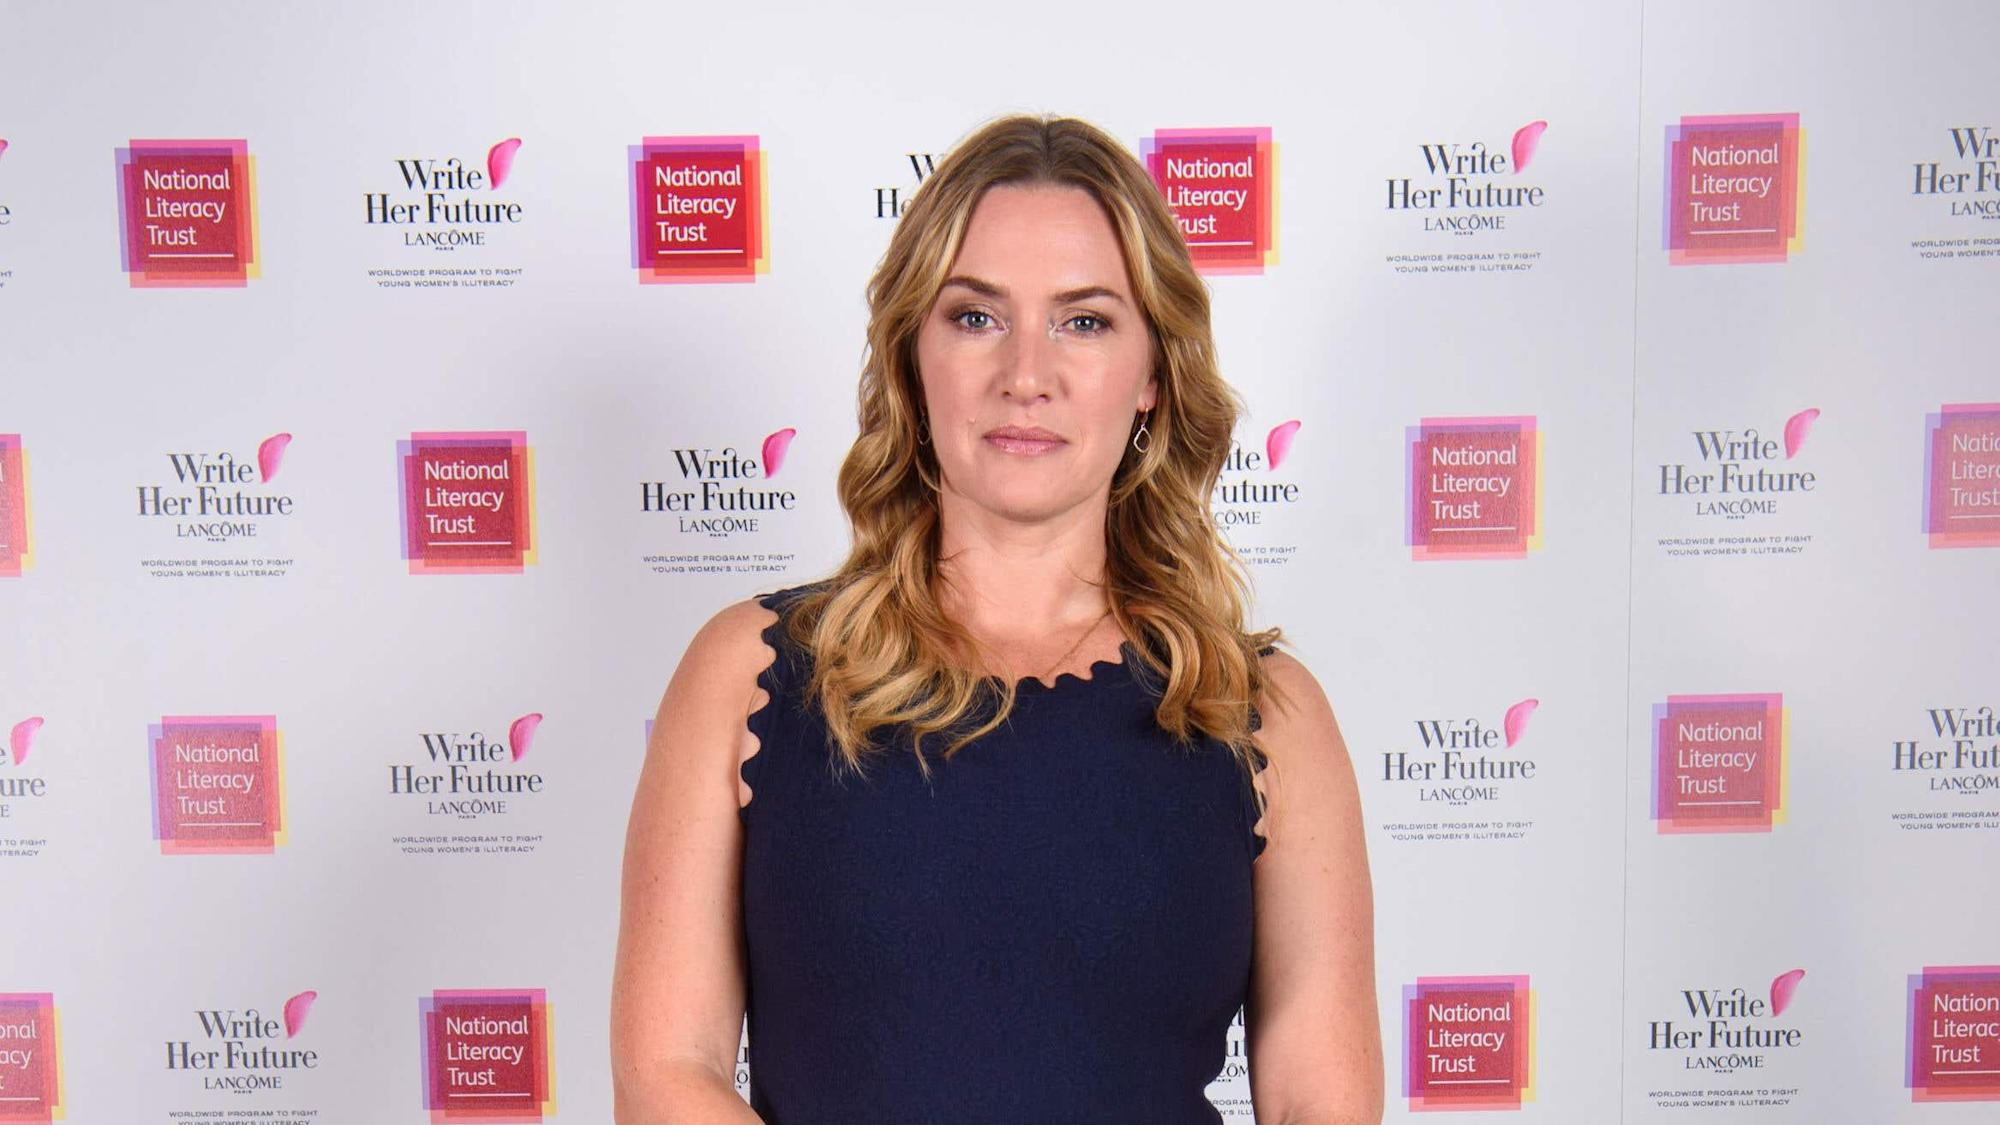 Kate Winslet, Duchess of Cornwall and Rob Brydon to appear at Hay Festival